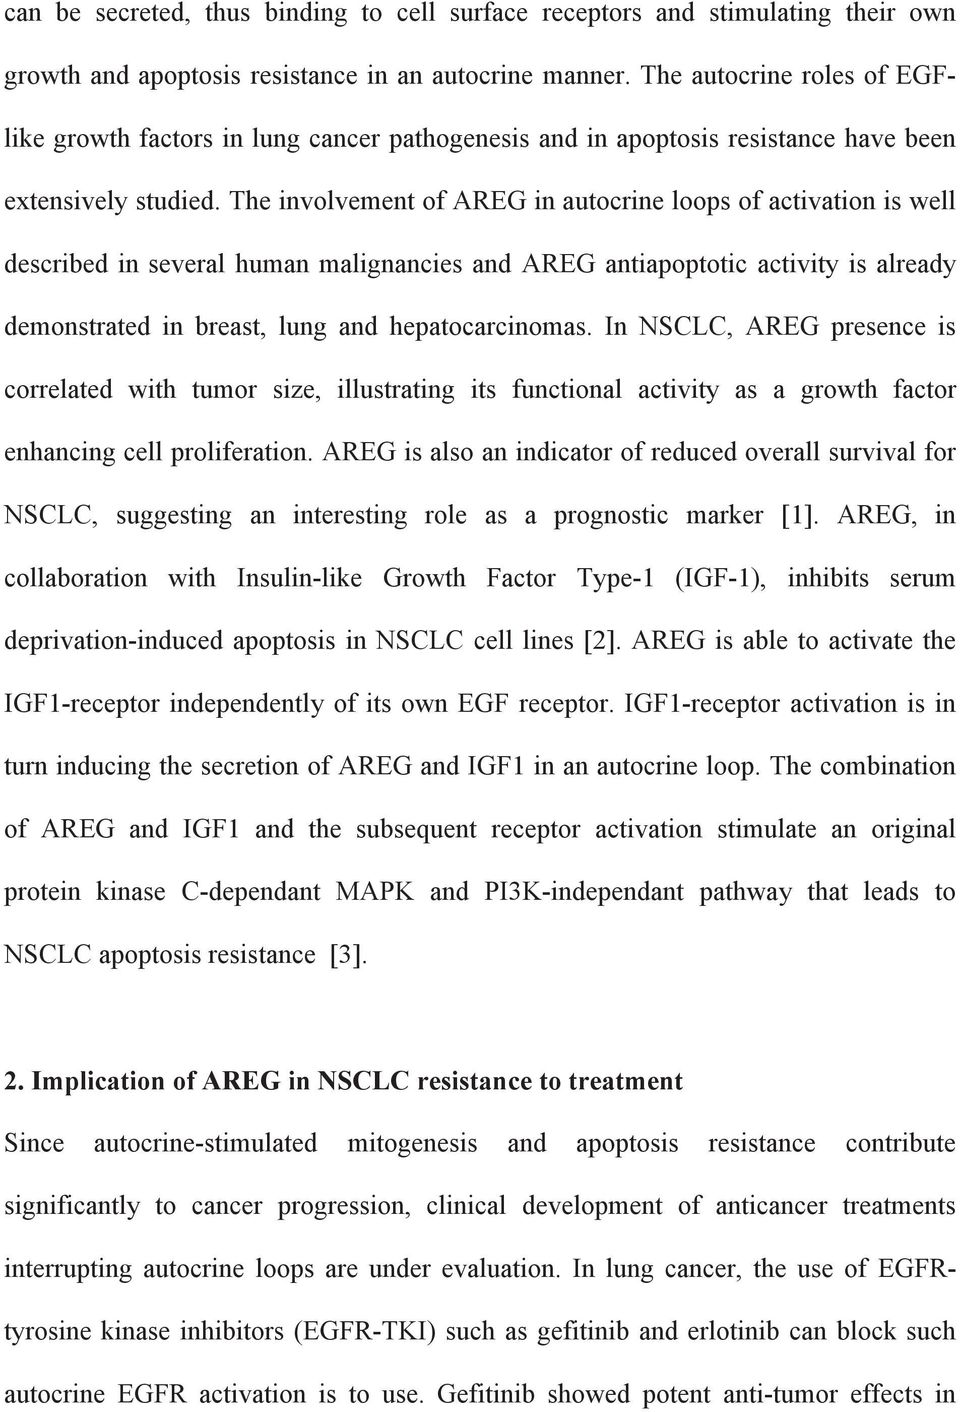 The involvement of AREG in autocrine loops of activation is well described in several human malignancies and AREG antiapoptotic activity is already demonstrated in breast, lung and hepatocarcinomas.